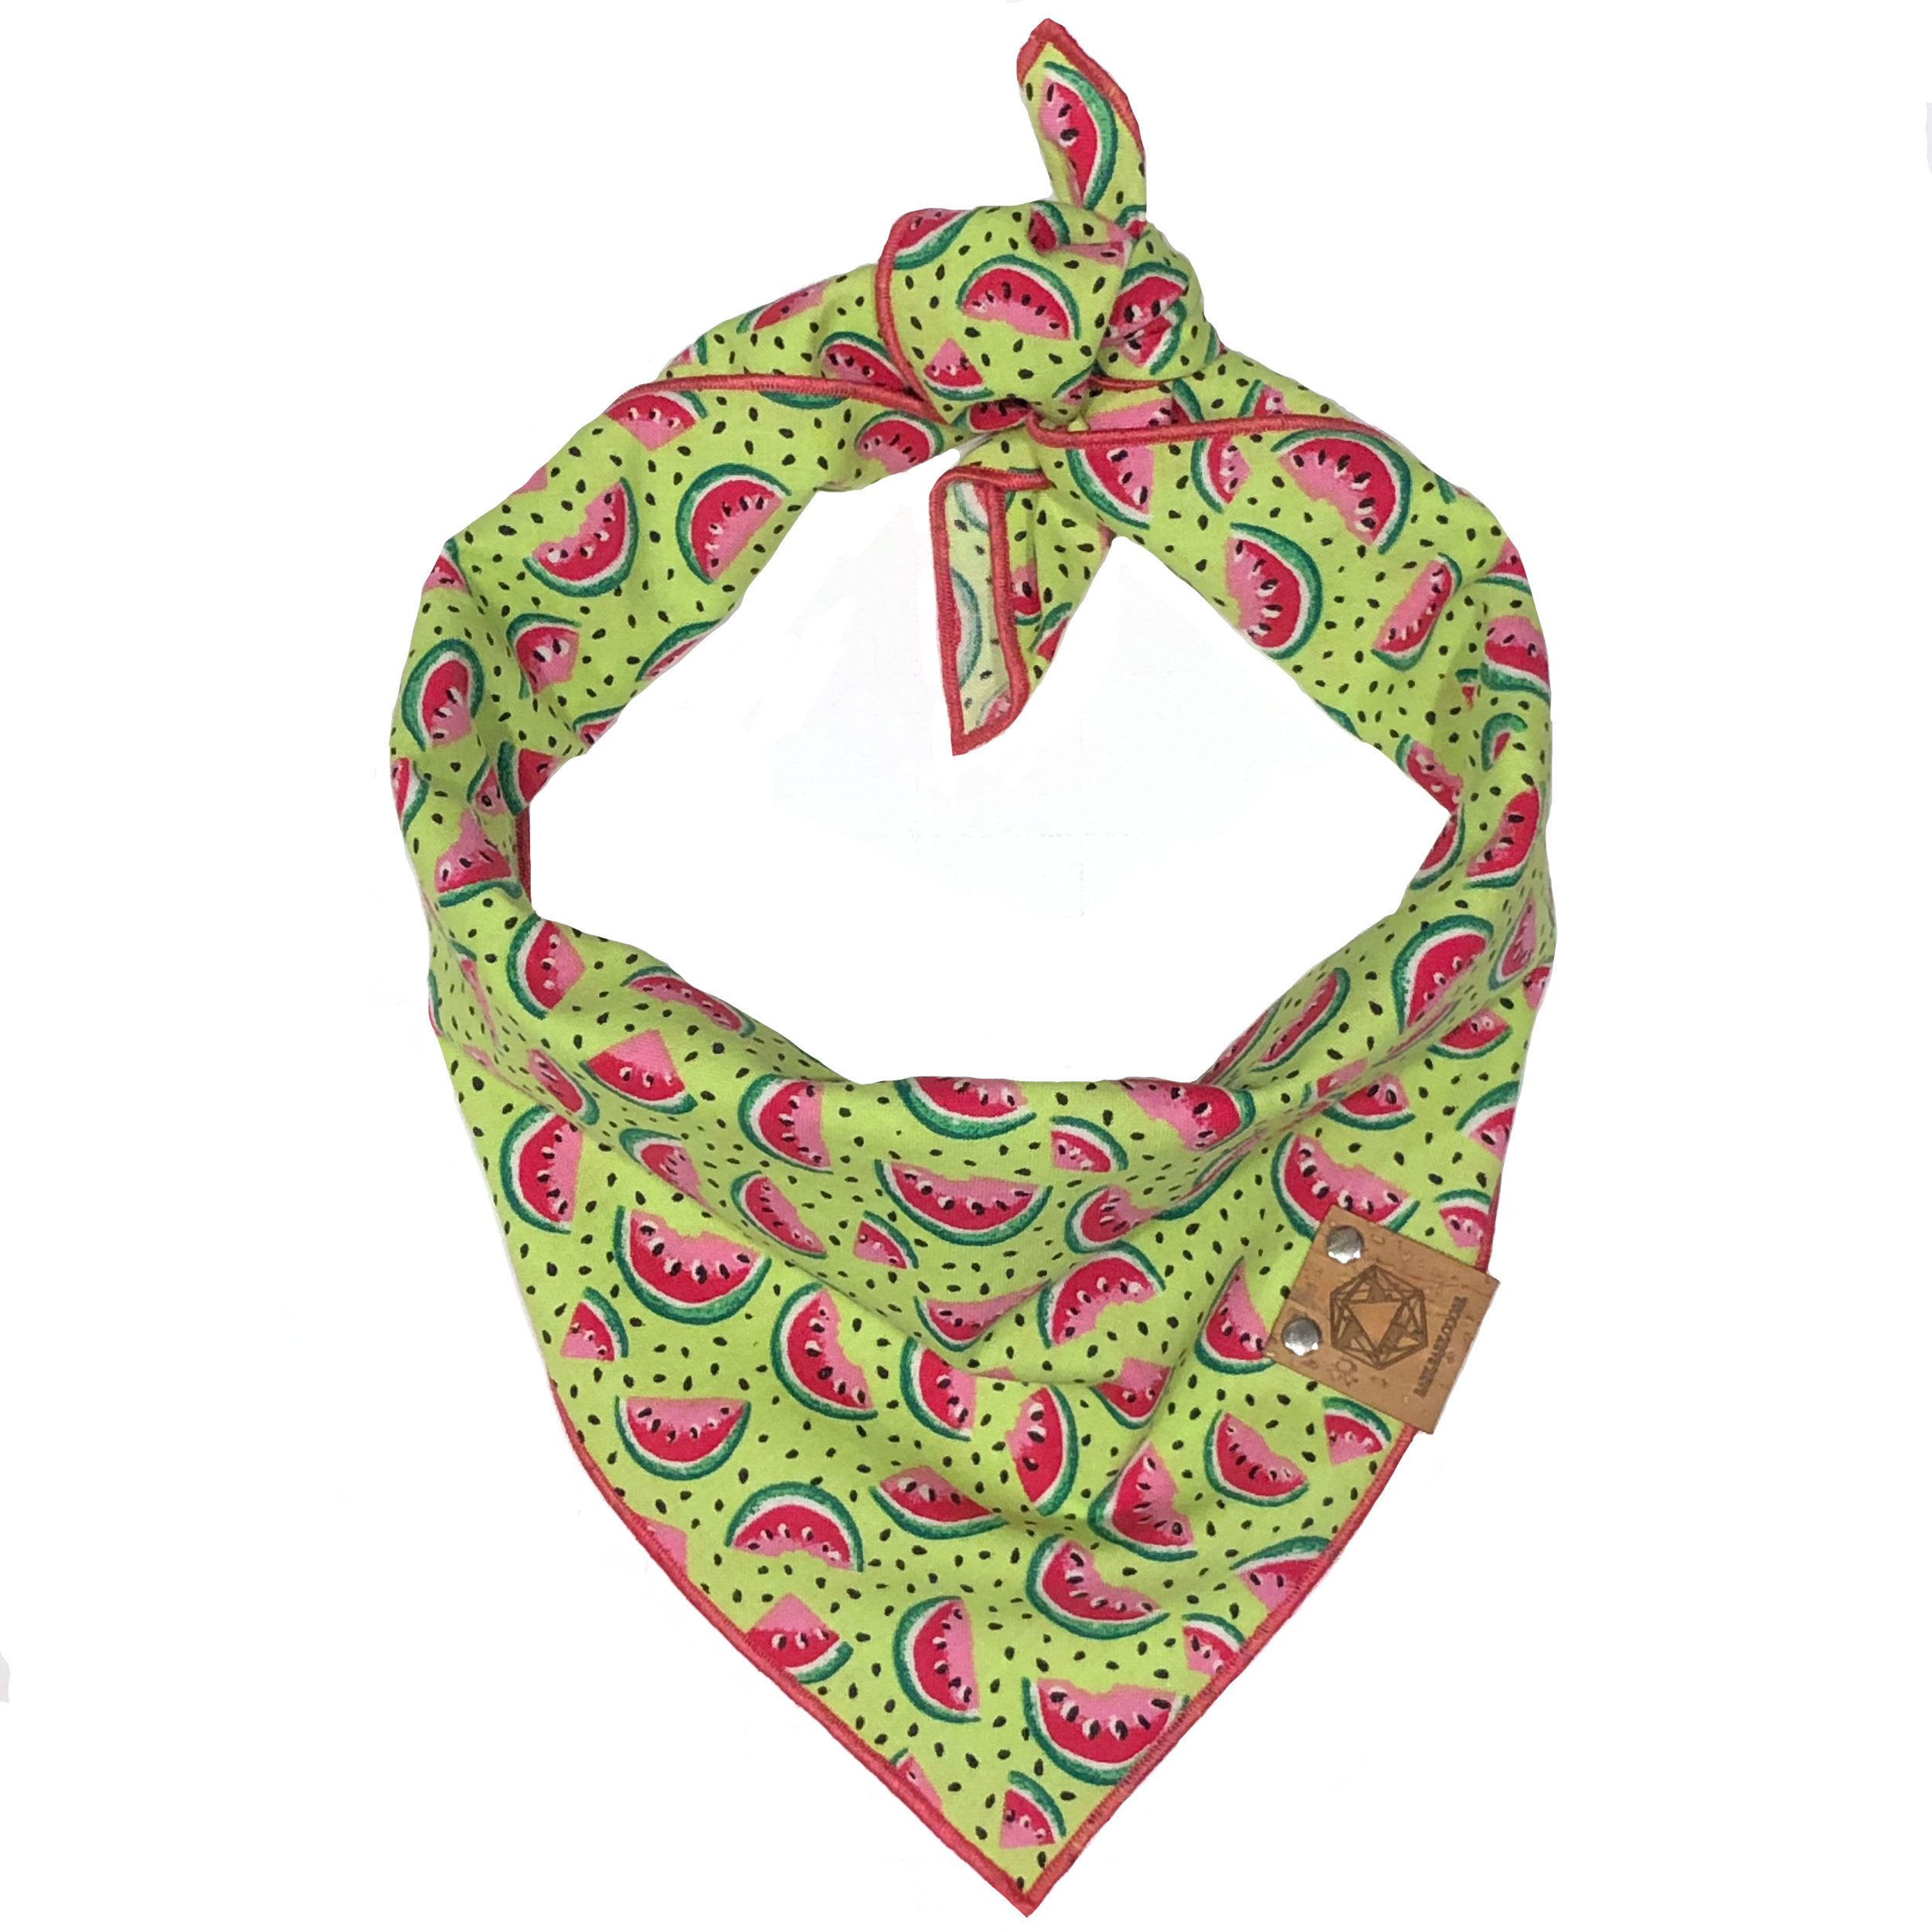 green-watermelon-dog-bandana.jpg